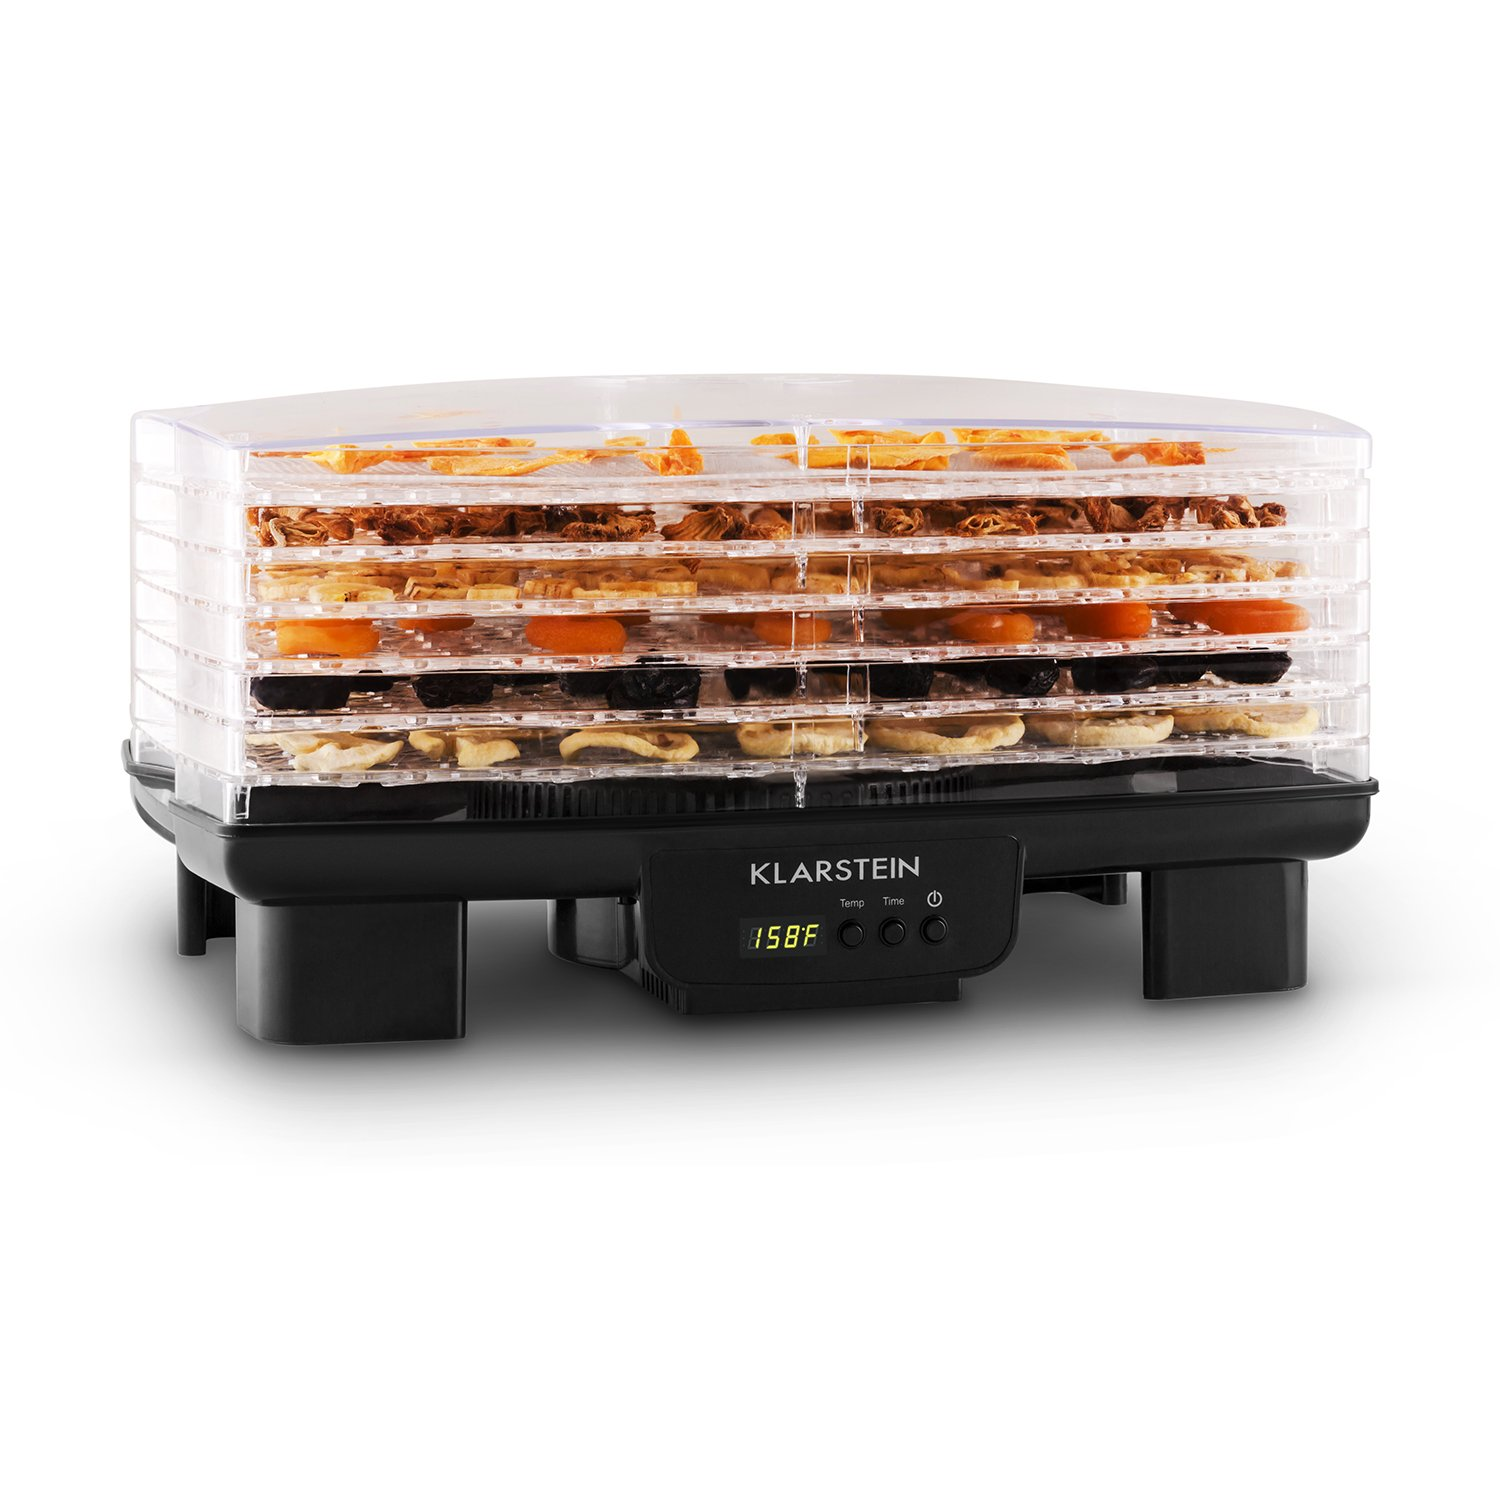 KLARSTEIN Bananarama Fruit Dryer • Dehydrator • 550W • 6 Levels • 2 Stacking Modes • Adjustable Temperature • LCD-Display • Timer • Fast and Healthy Drying Process • For a Variety of Foods • Black